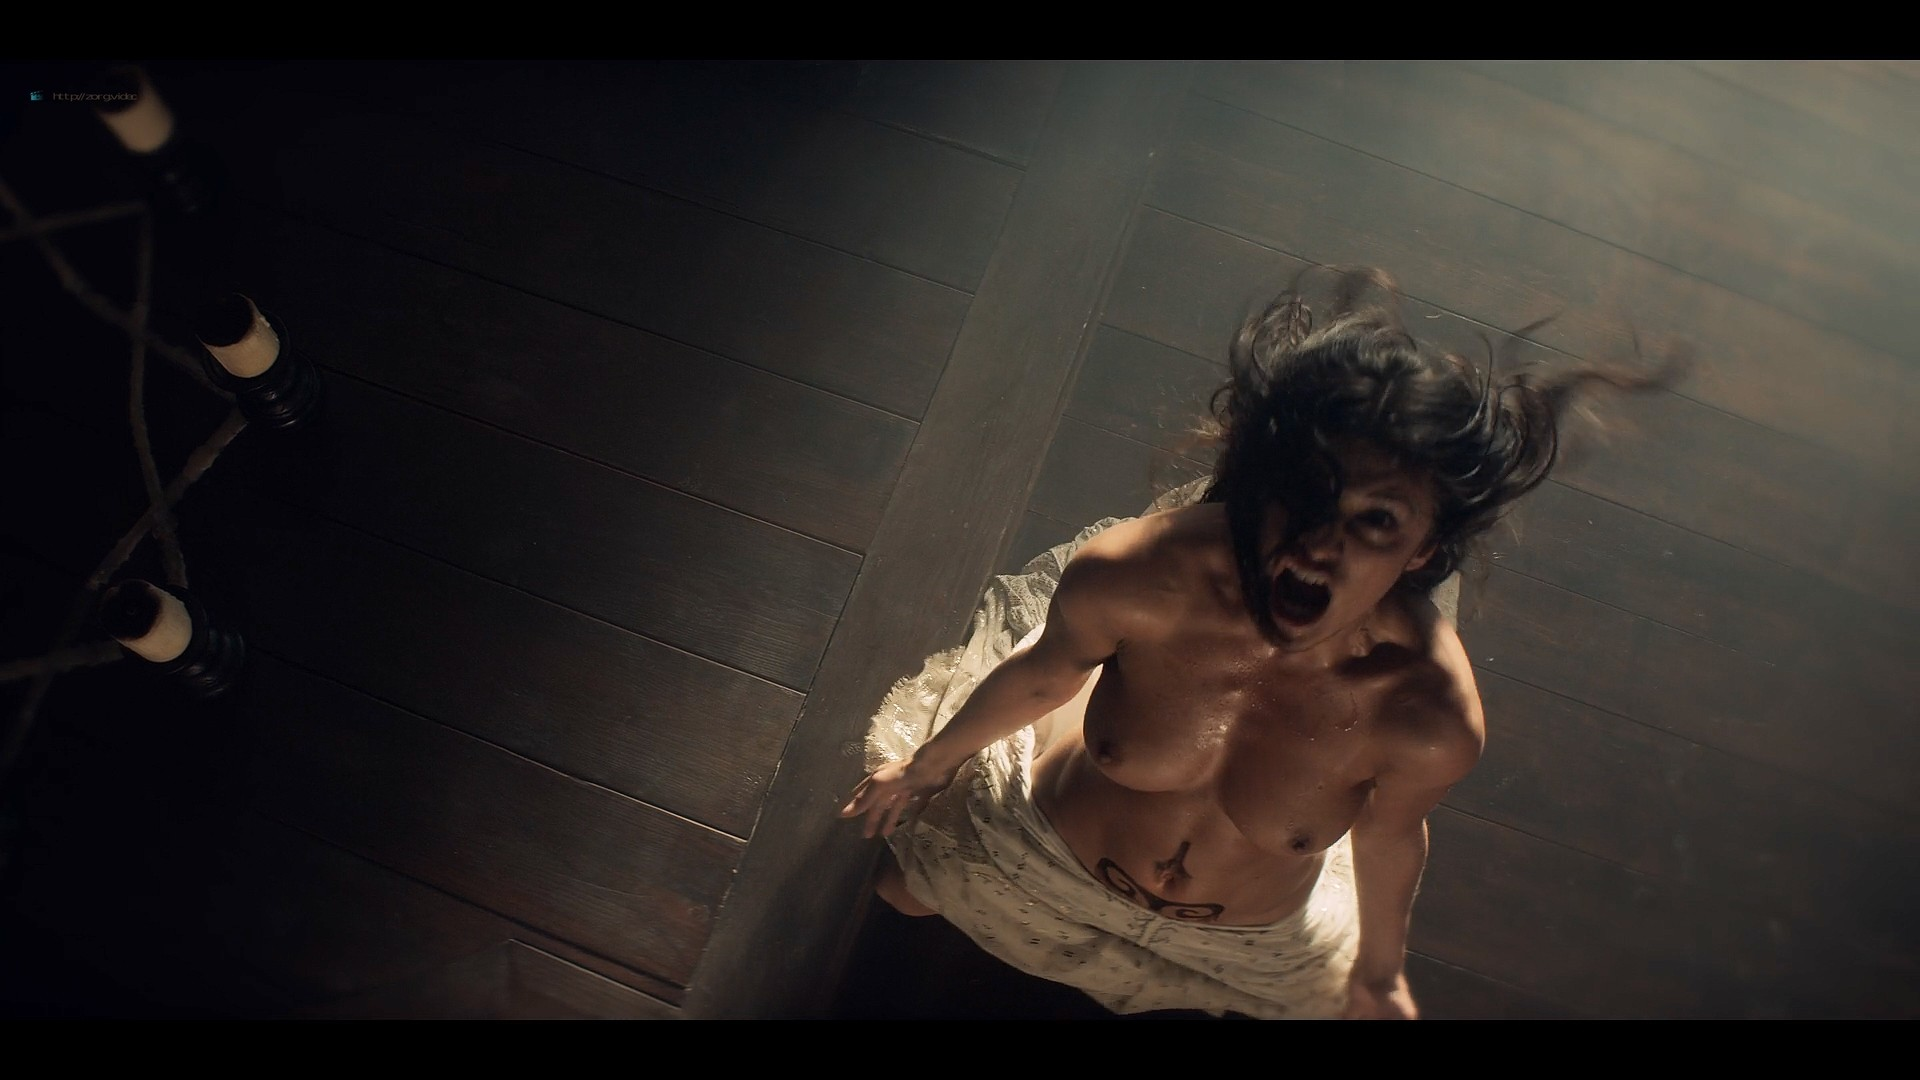 Anya Chalotra nude others nude too - The Witcher (2019) s1e5-6 HD 1080p WEB (5)